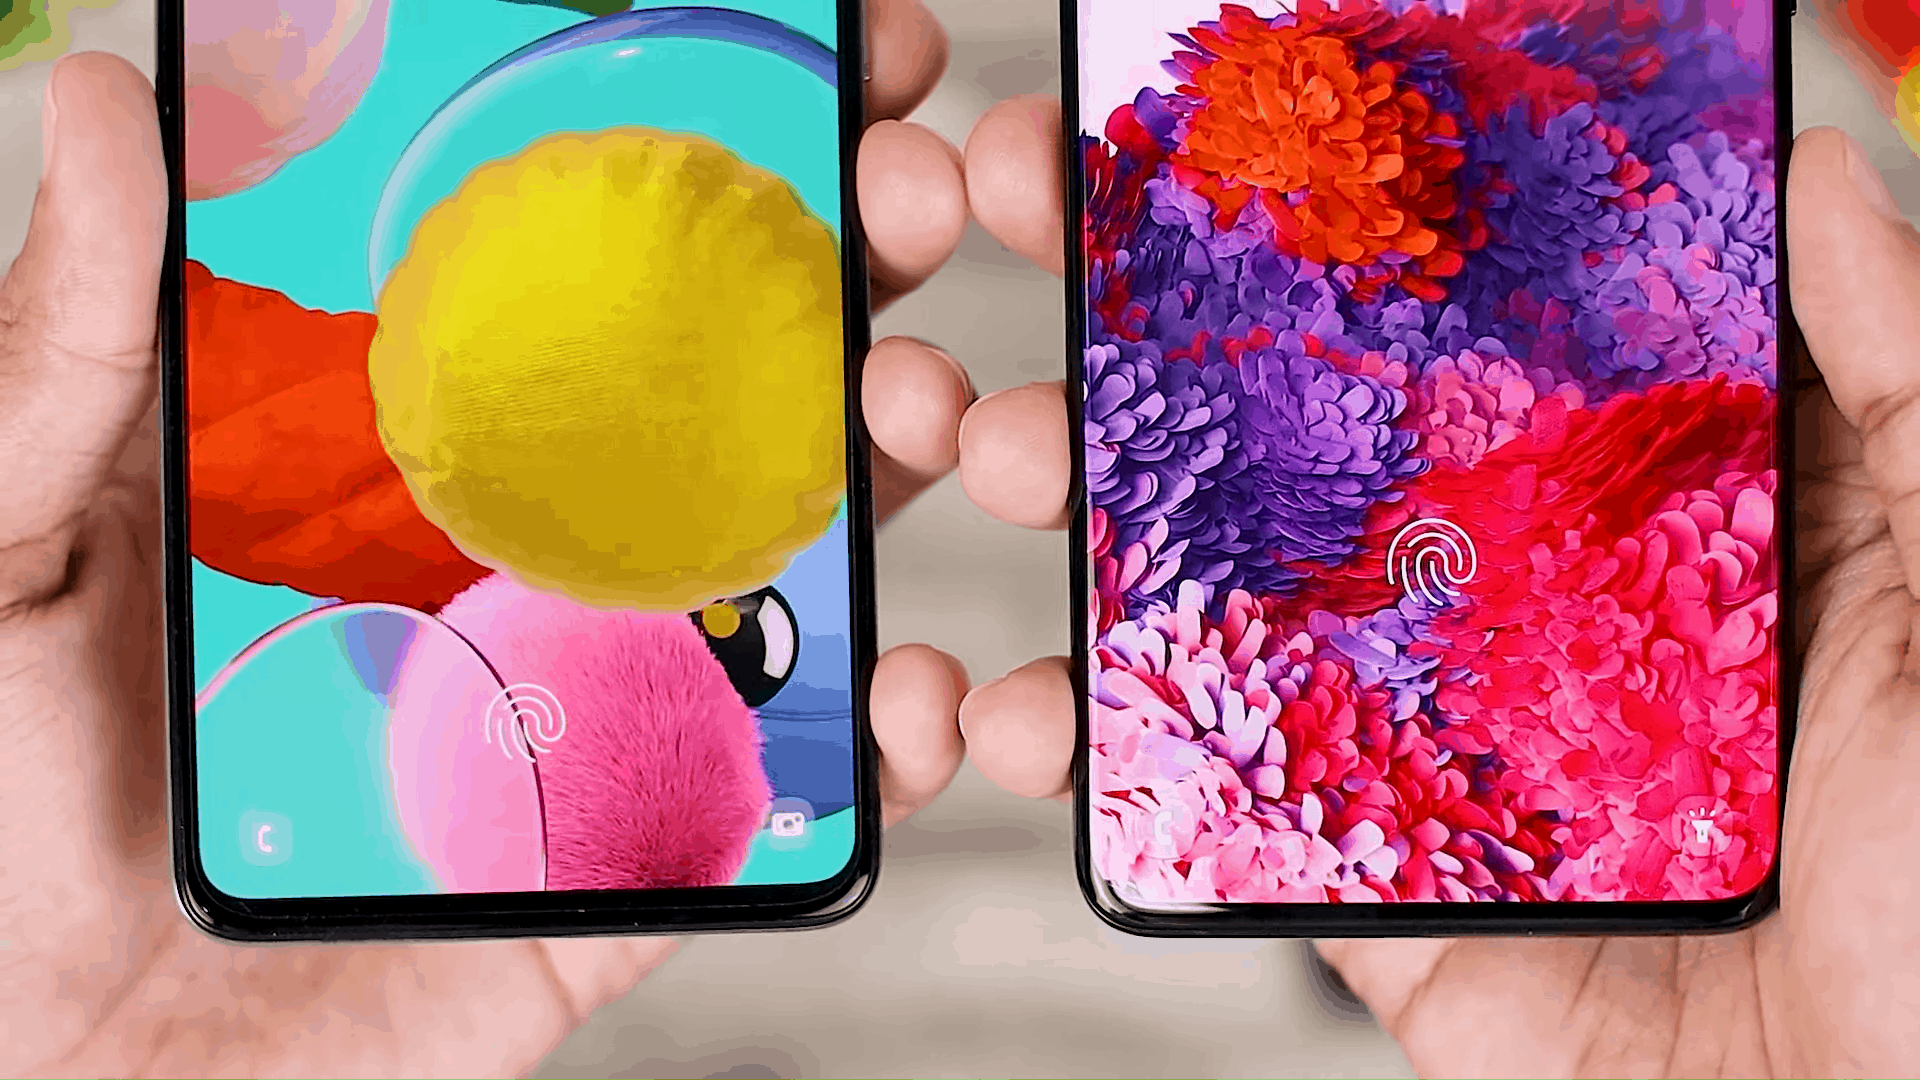 Fingerprint Icon - One UI 3.0 features of Samsung Galaxy A51 and its comparison with the Galaxy S20+ and One UI 3.1 on the Galaxy S21+